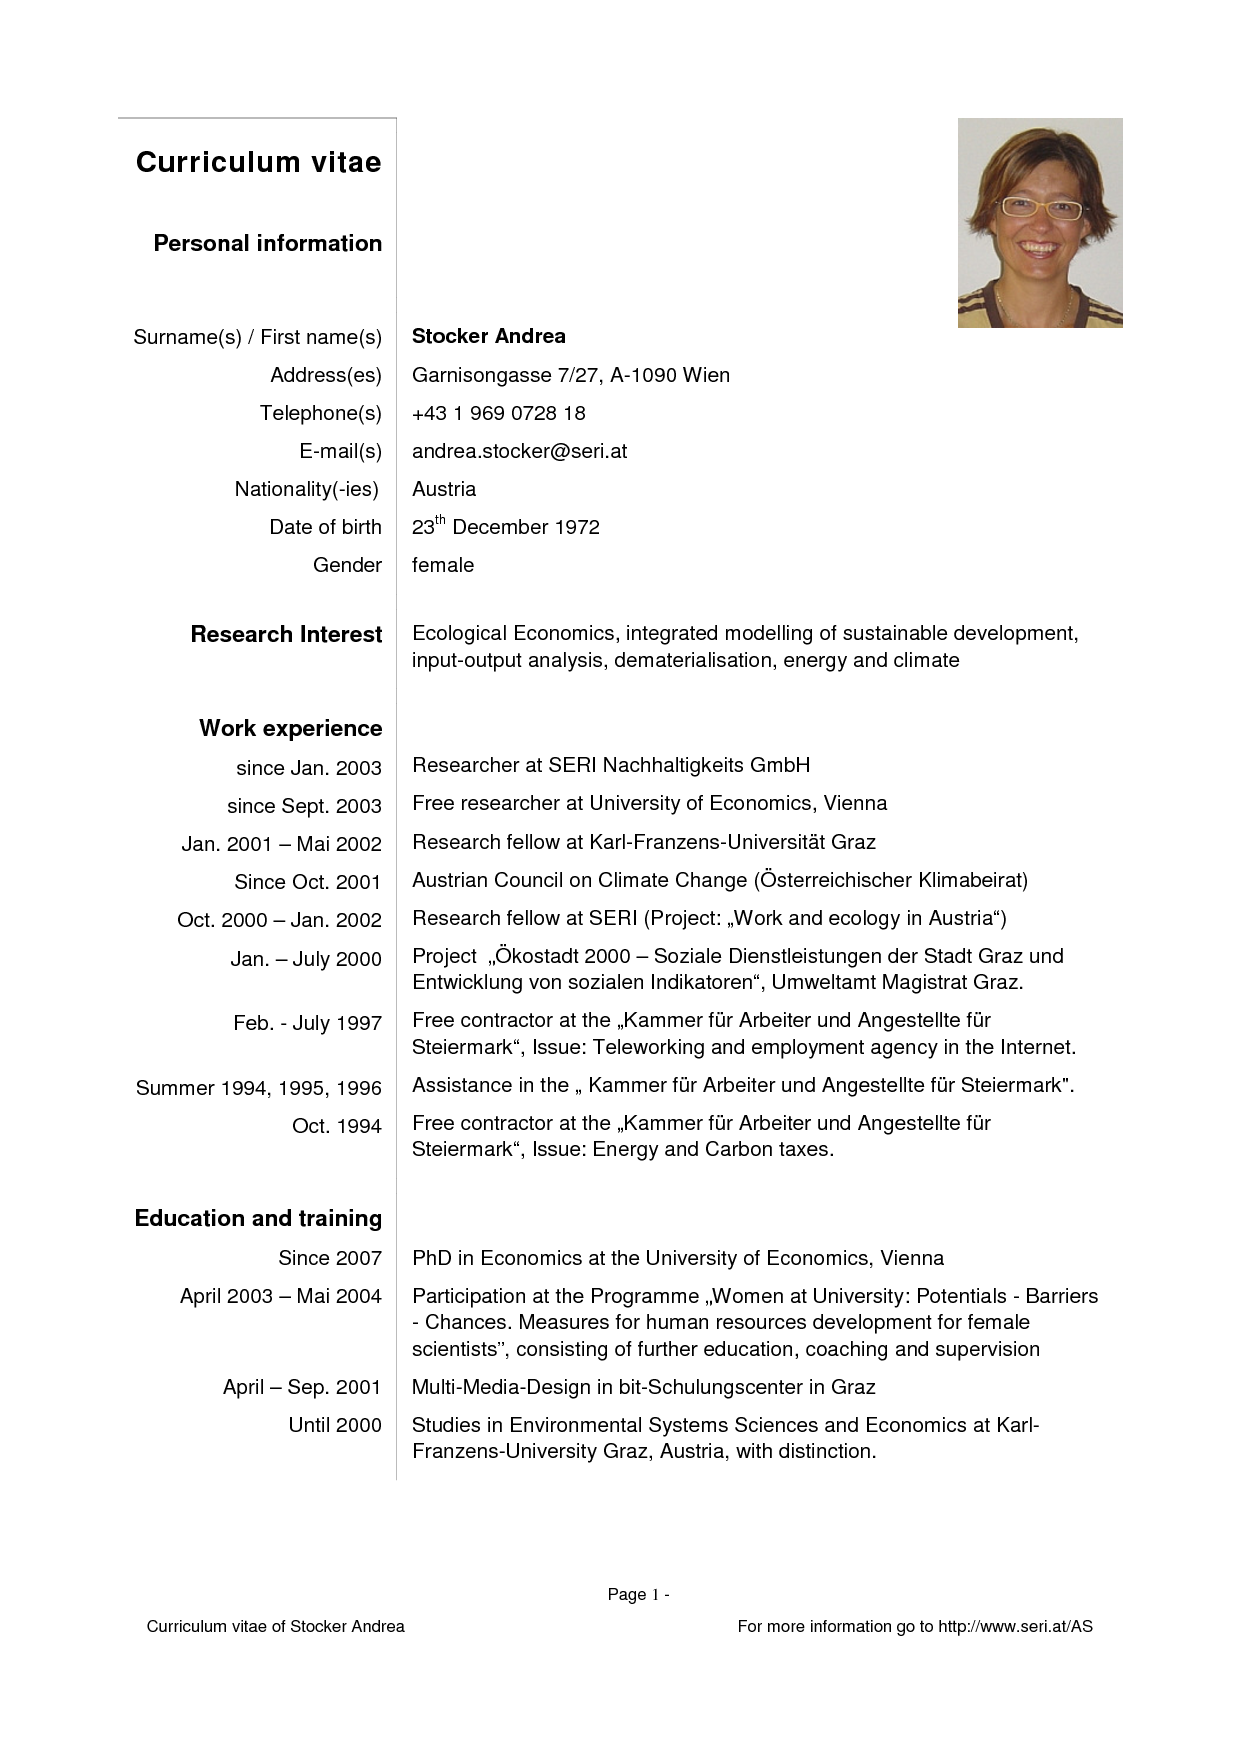 Sample Resume Pdf Curriculumvitaesamplespdftemplate2016Pcfbcrlg 1240×1754